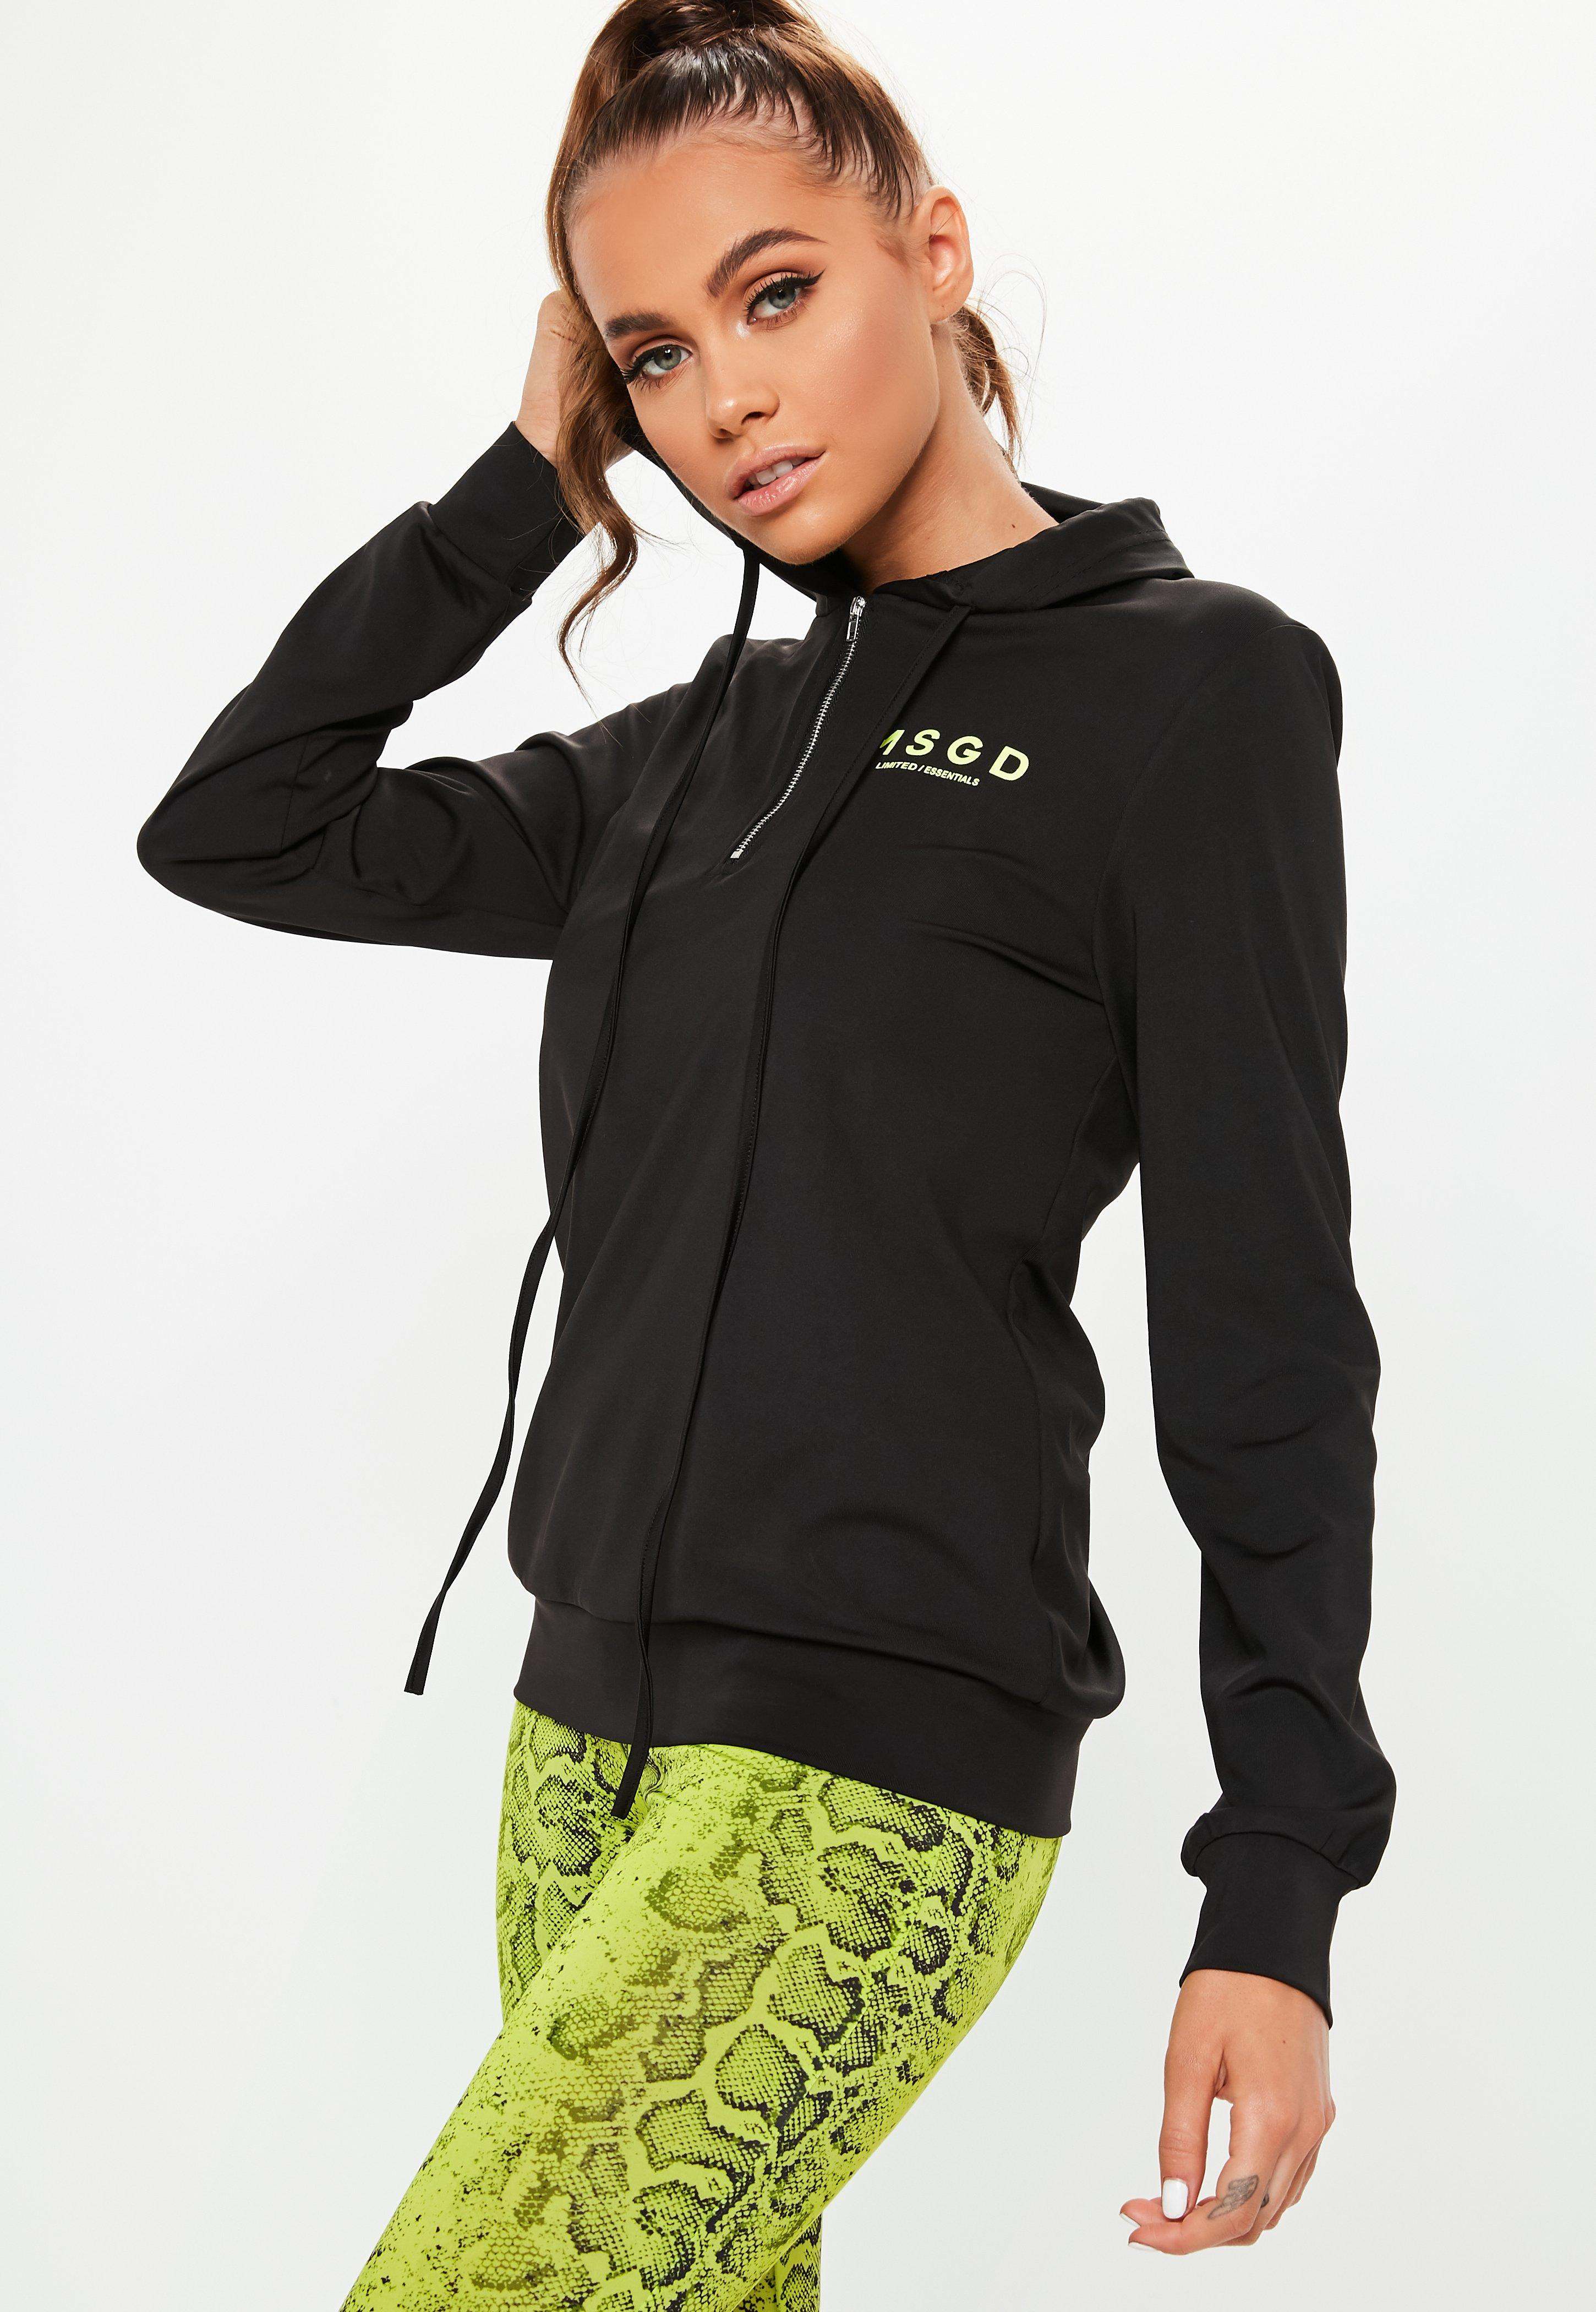 afb447cacb4 Hoodies